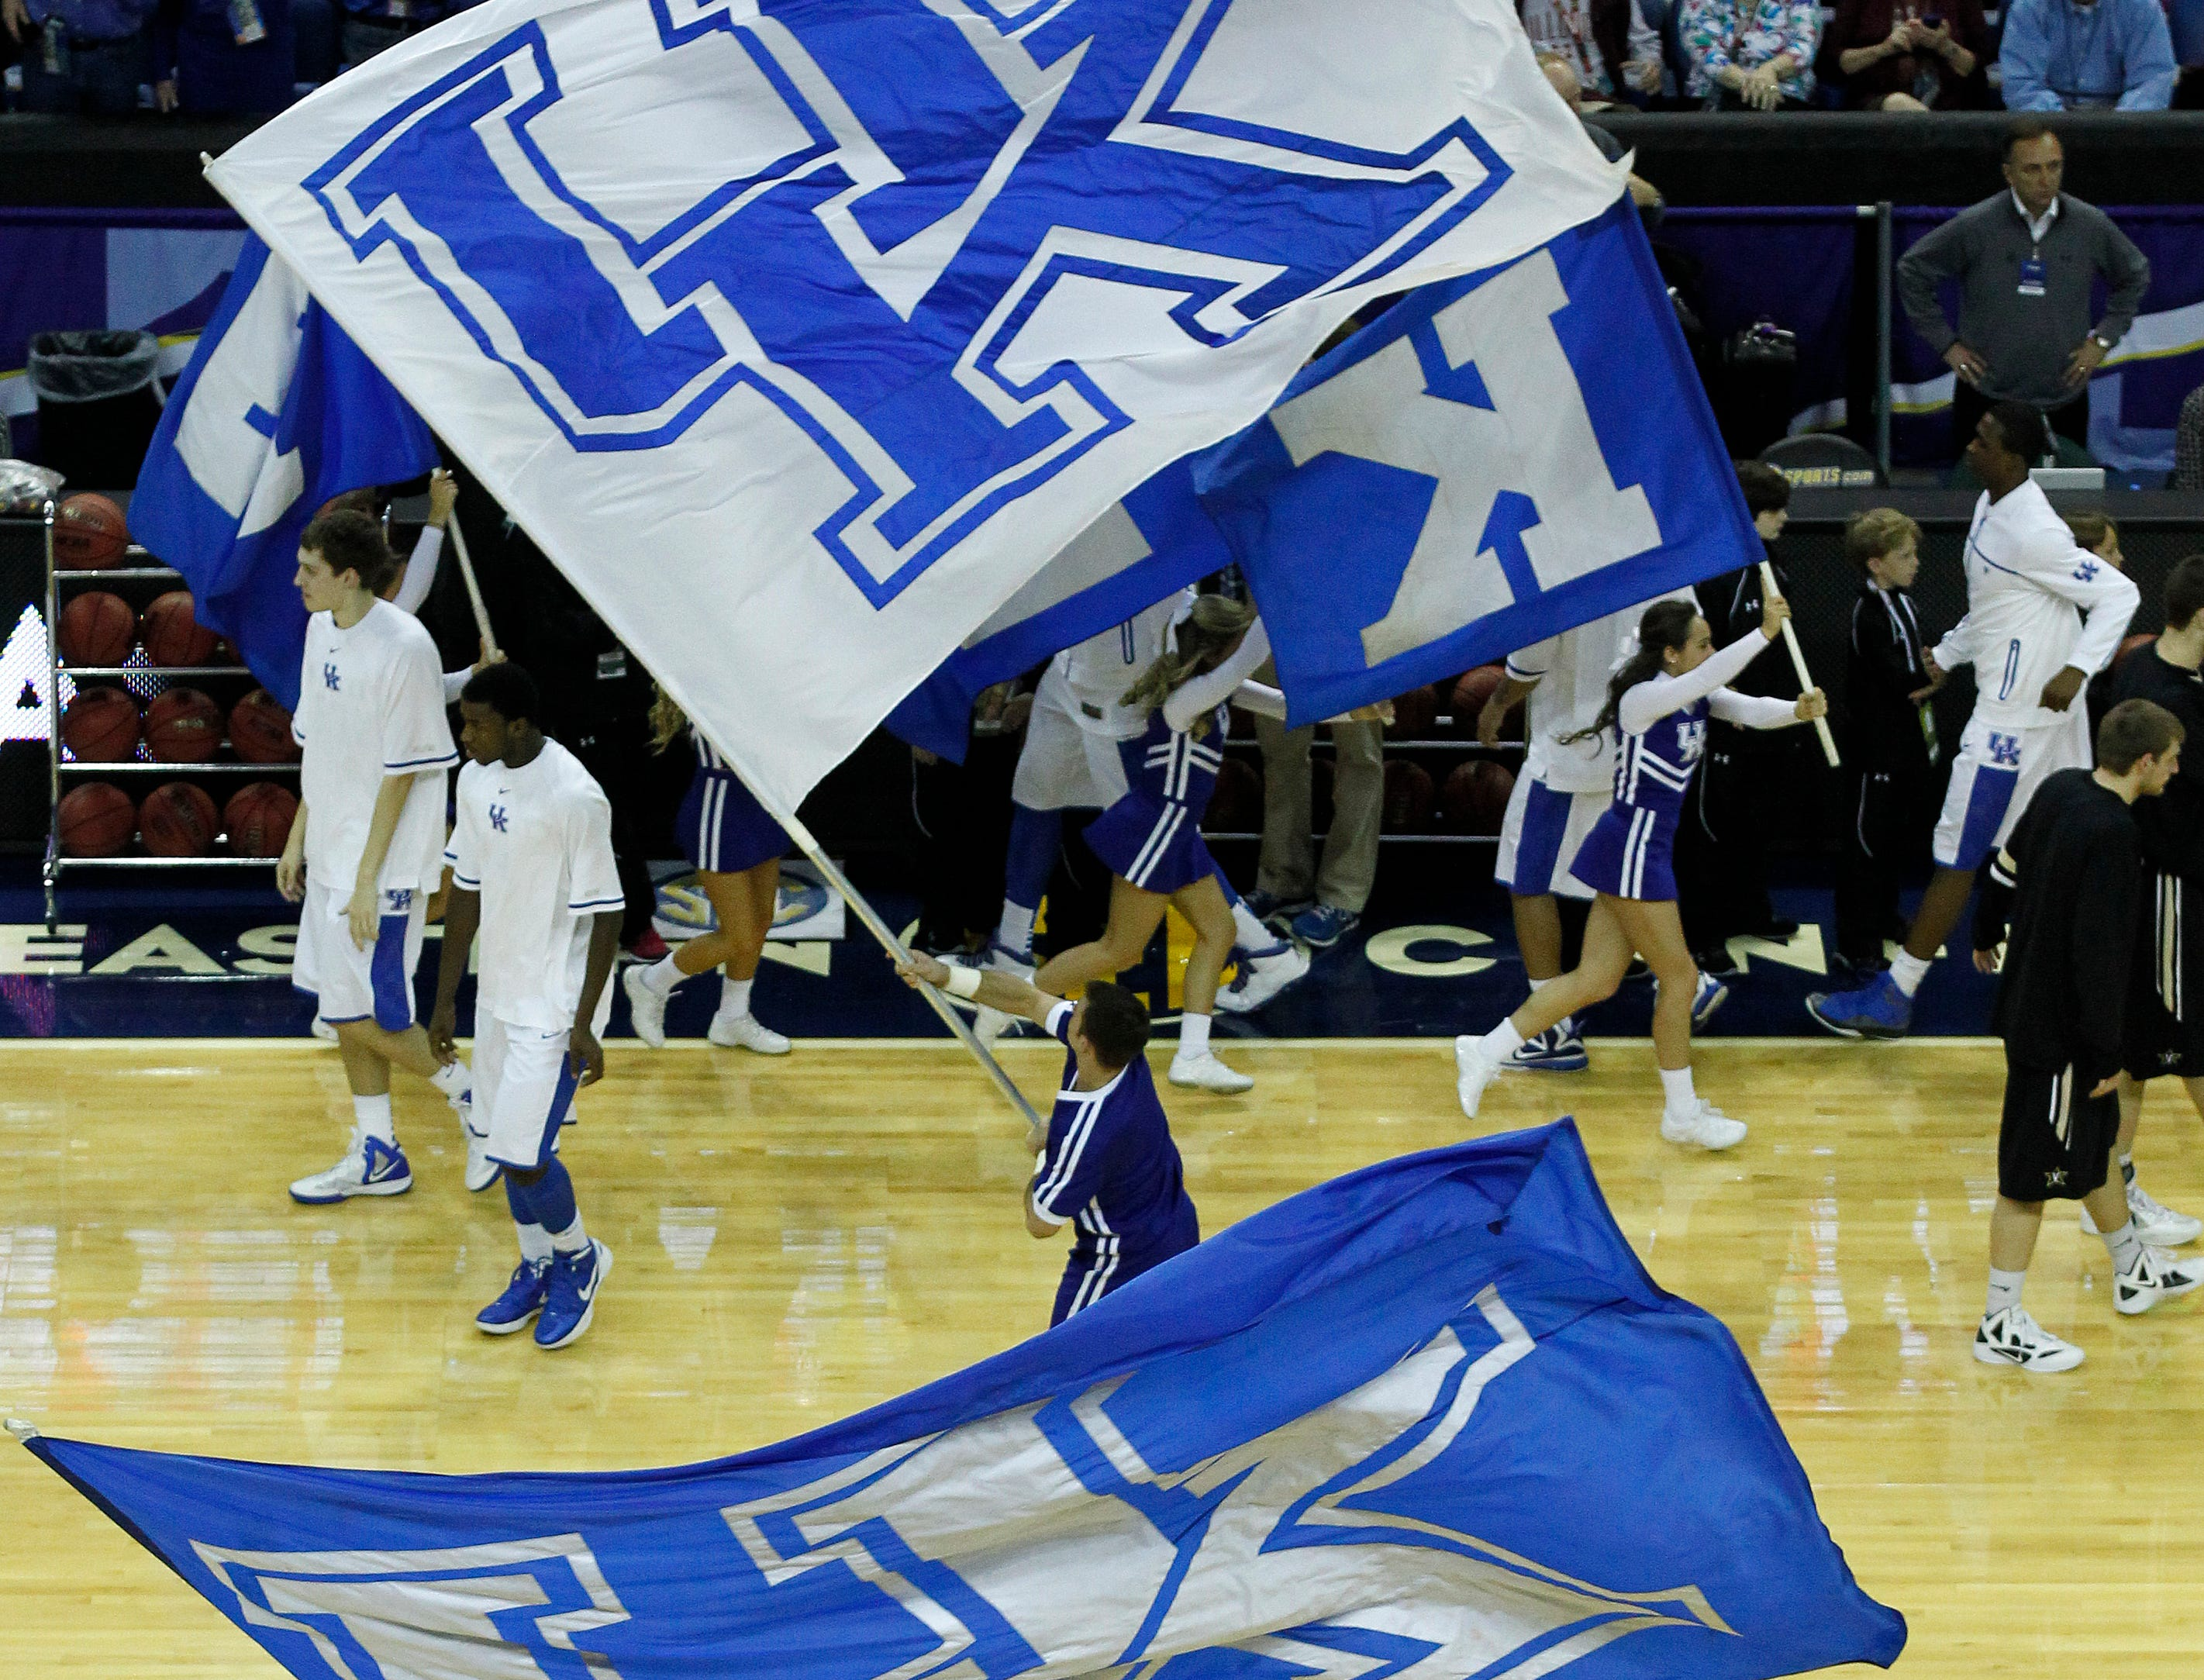 Kentucky cheerleaders perform during the first half of an NCAA college basketball game in the championship game of the 2012 Southeastern Conference tournament at the New Orleans Arena in New Orleans, Sunday, March 11, 2012. (AP Photo/Dave Martin)